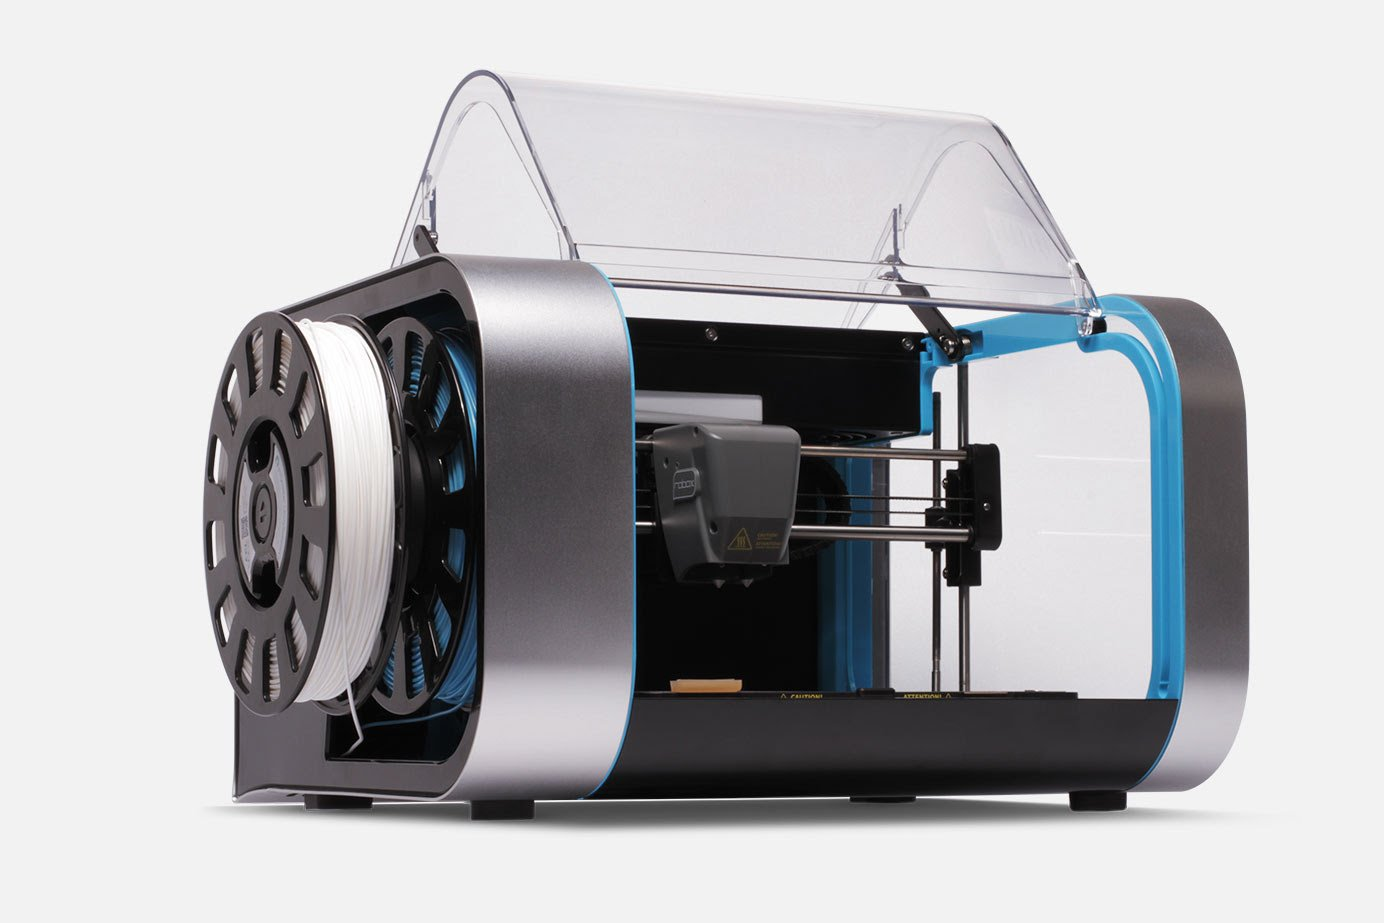 Image of Alignment Tools CEL Robox Dual-Material 3D Printer and Micro-Manufacturing Platform